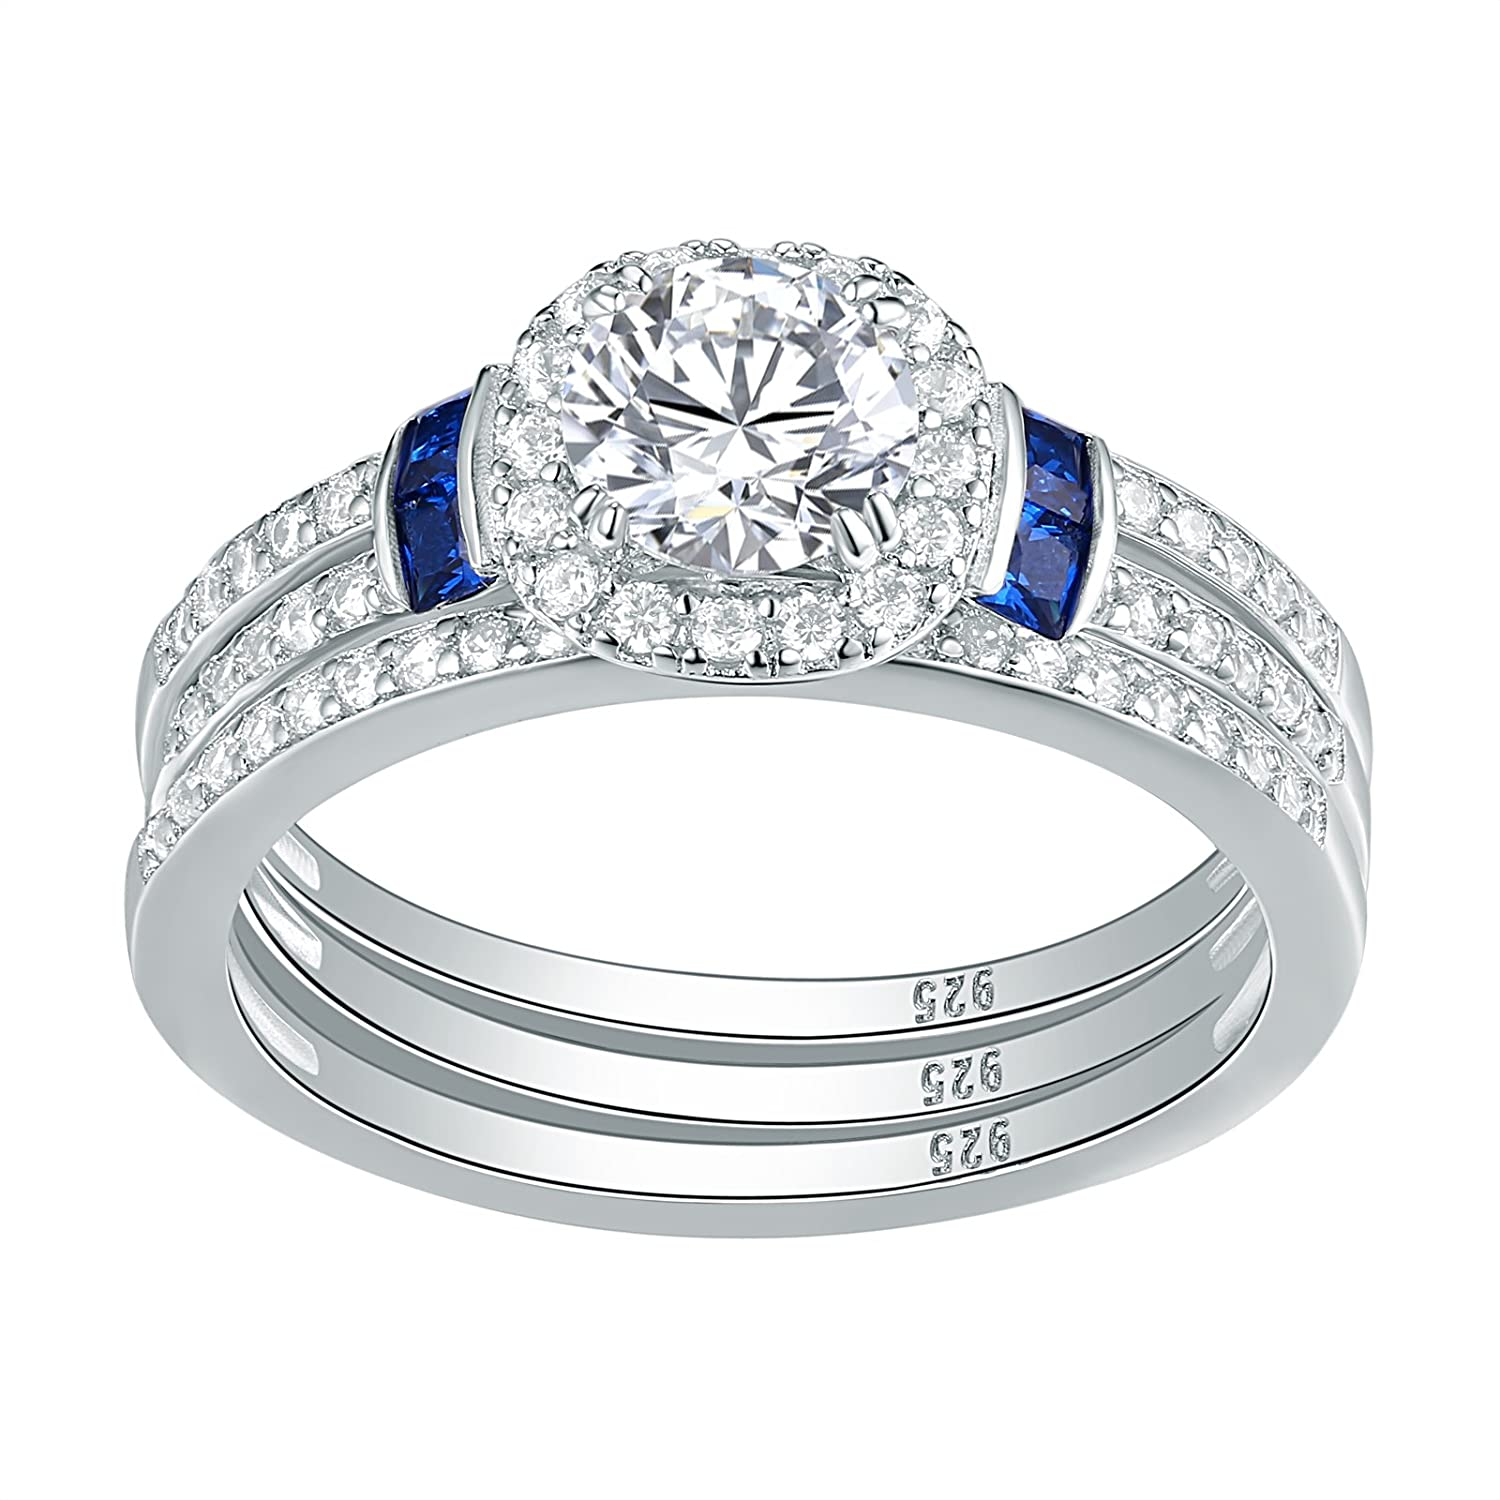 Newshe 3pcs Created Blue Sapphire AAA Cz 925 Sterling Silver Engagement Wedding Ring Set Size 5-10 Newshe Jewellery QR104434_SS